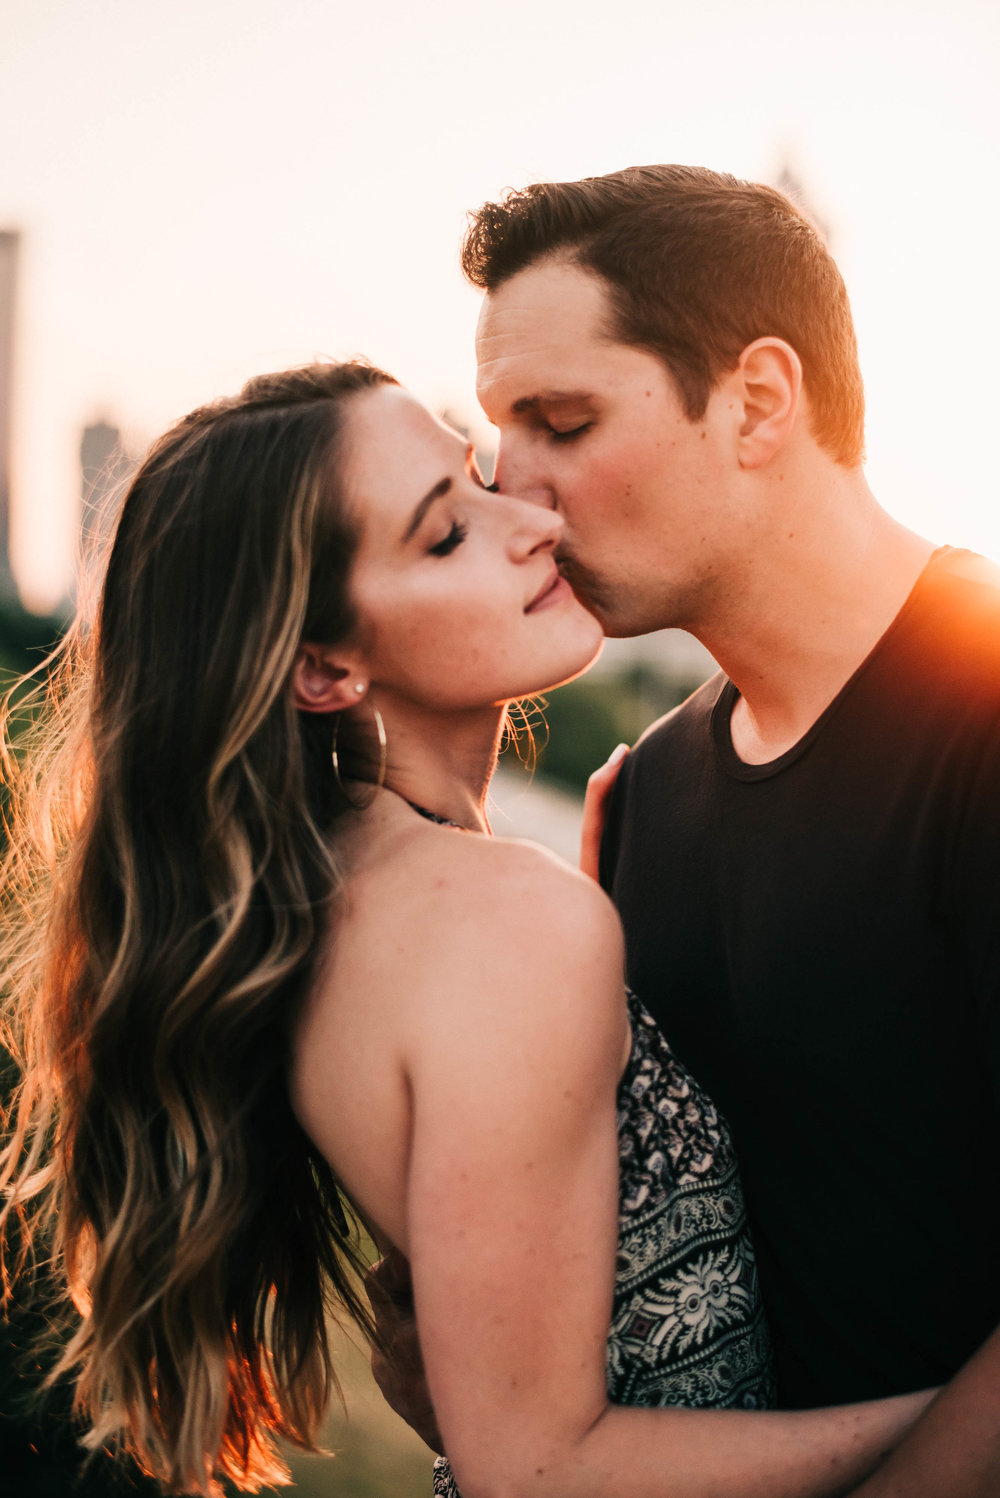 atlanta georgia portland oregon california engagement wedding nontraditional photographer-291.jpg